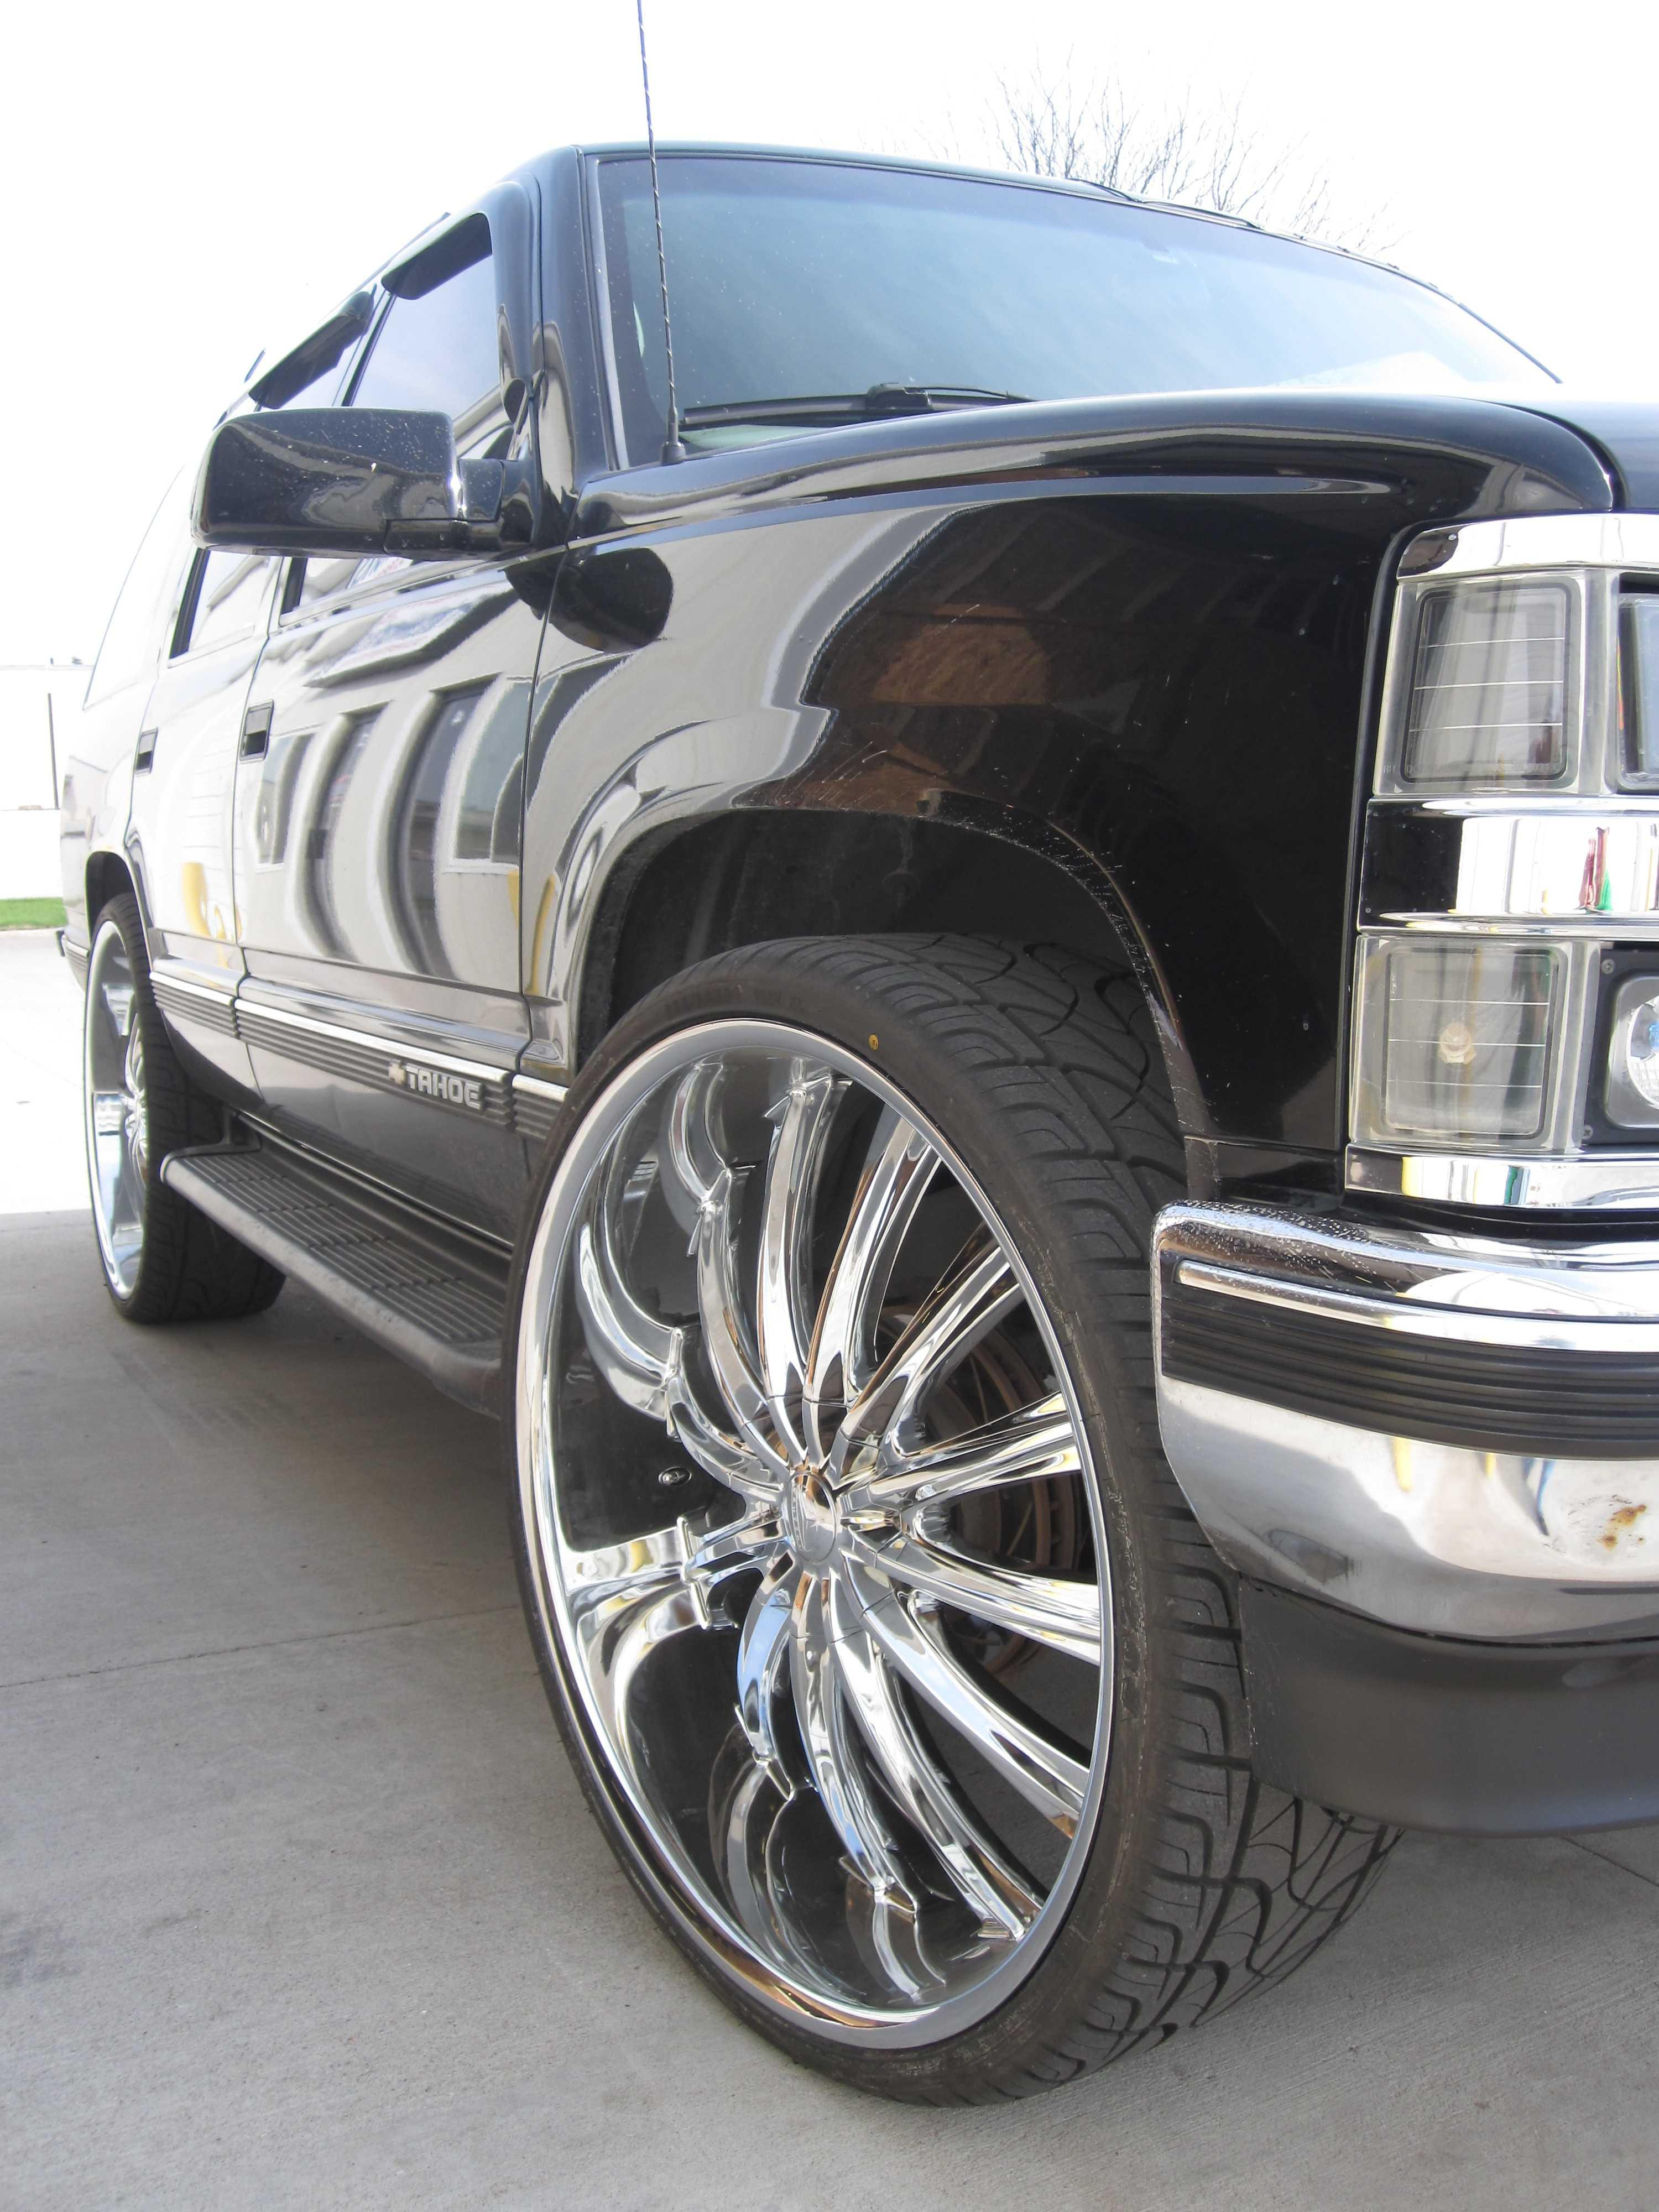 WheelSpecialists's 1999 Chevrolet Tahoe